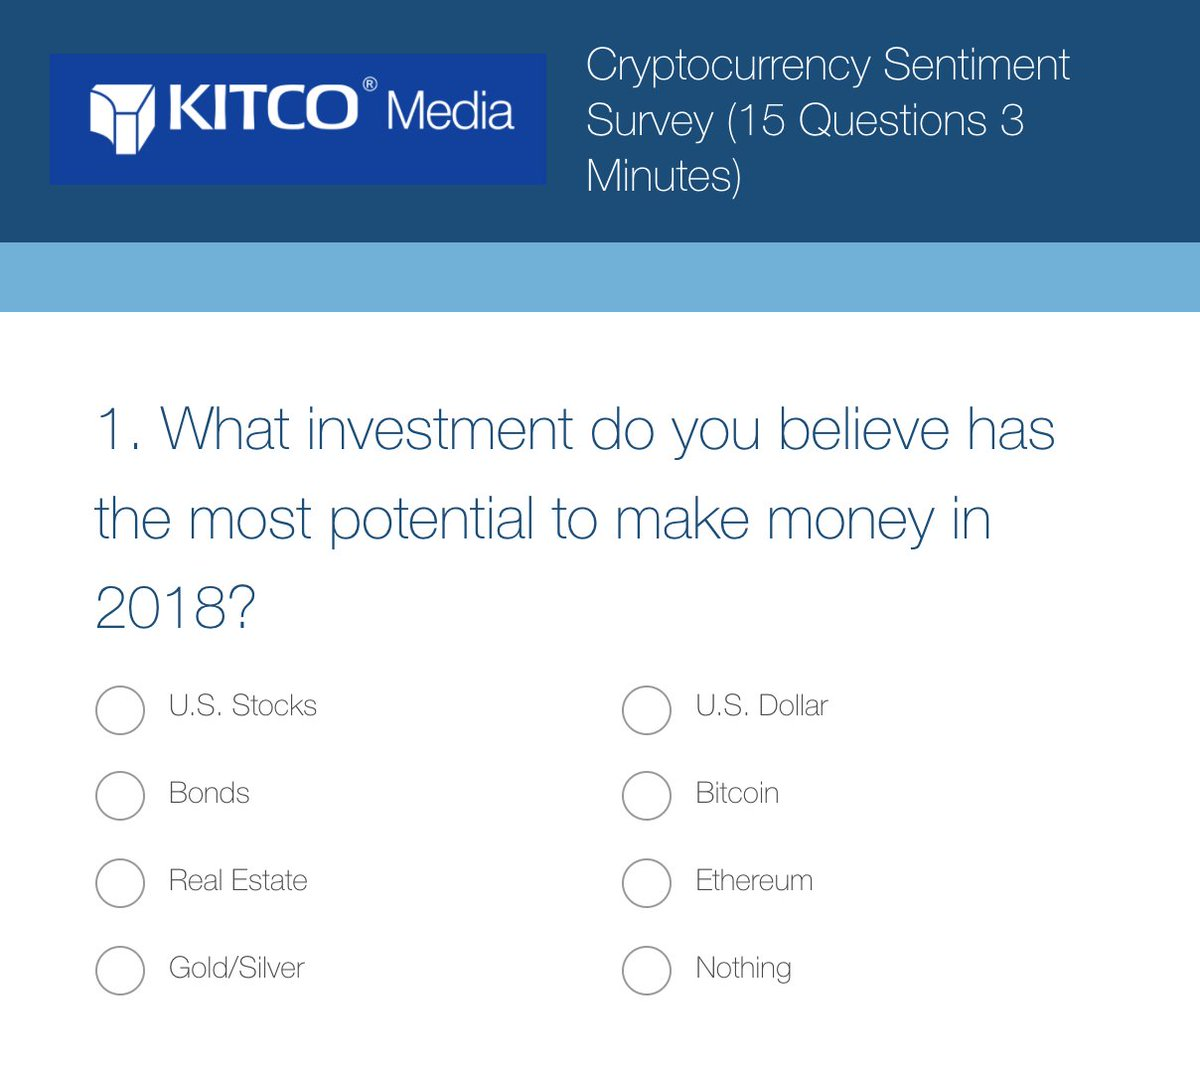 Don't Forget To Vote: #Gold, #Stocks, #Bonds, or #Cryptos? What investment has the most potential in 2018? | https://t.co/MTCTpK9My1